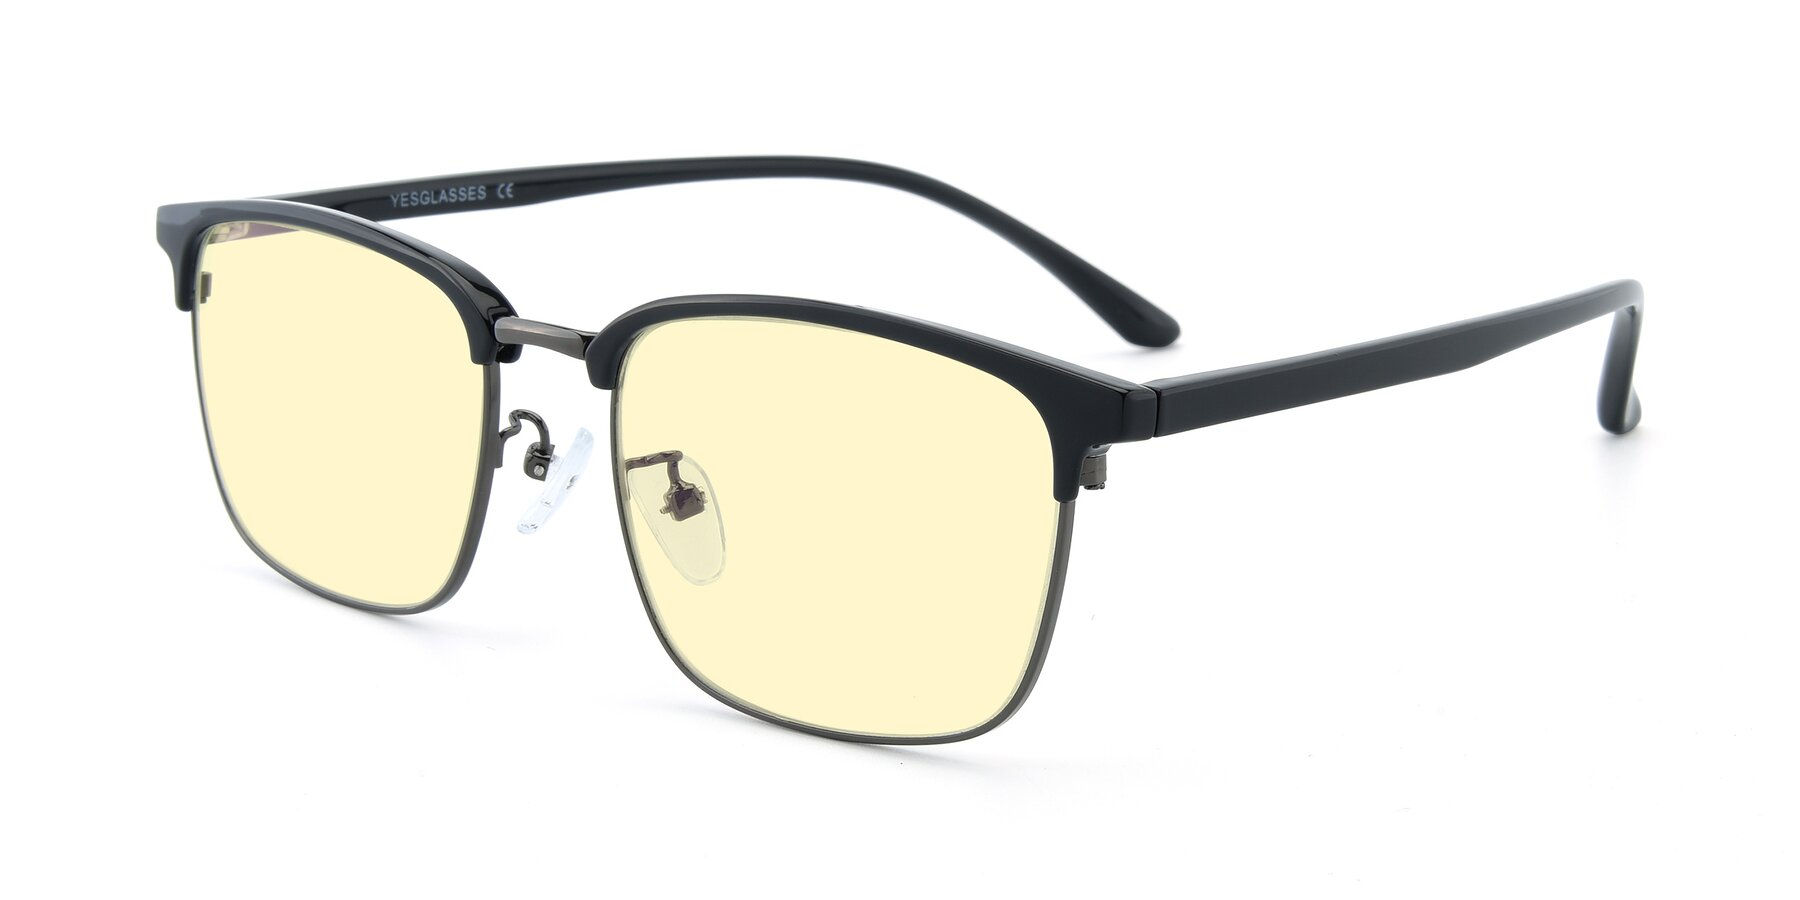 Angle of 00340 in Black-Gun with Light Yellow Tinted Lenses